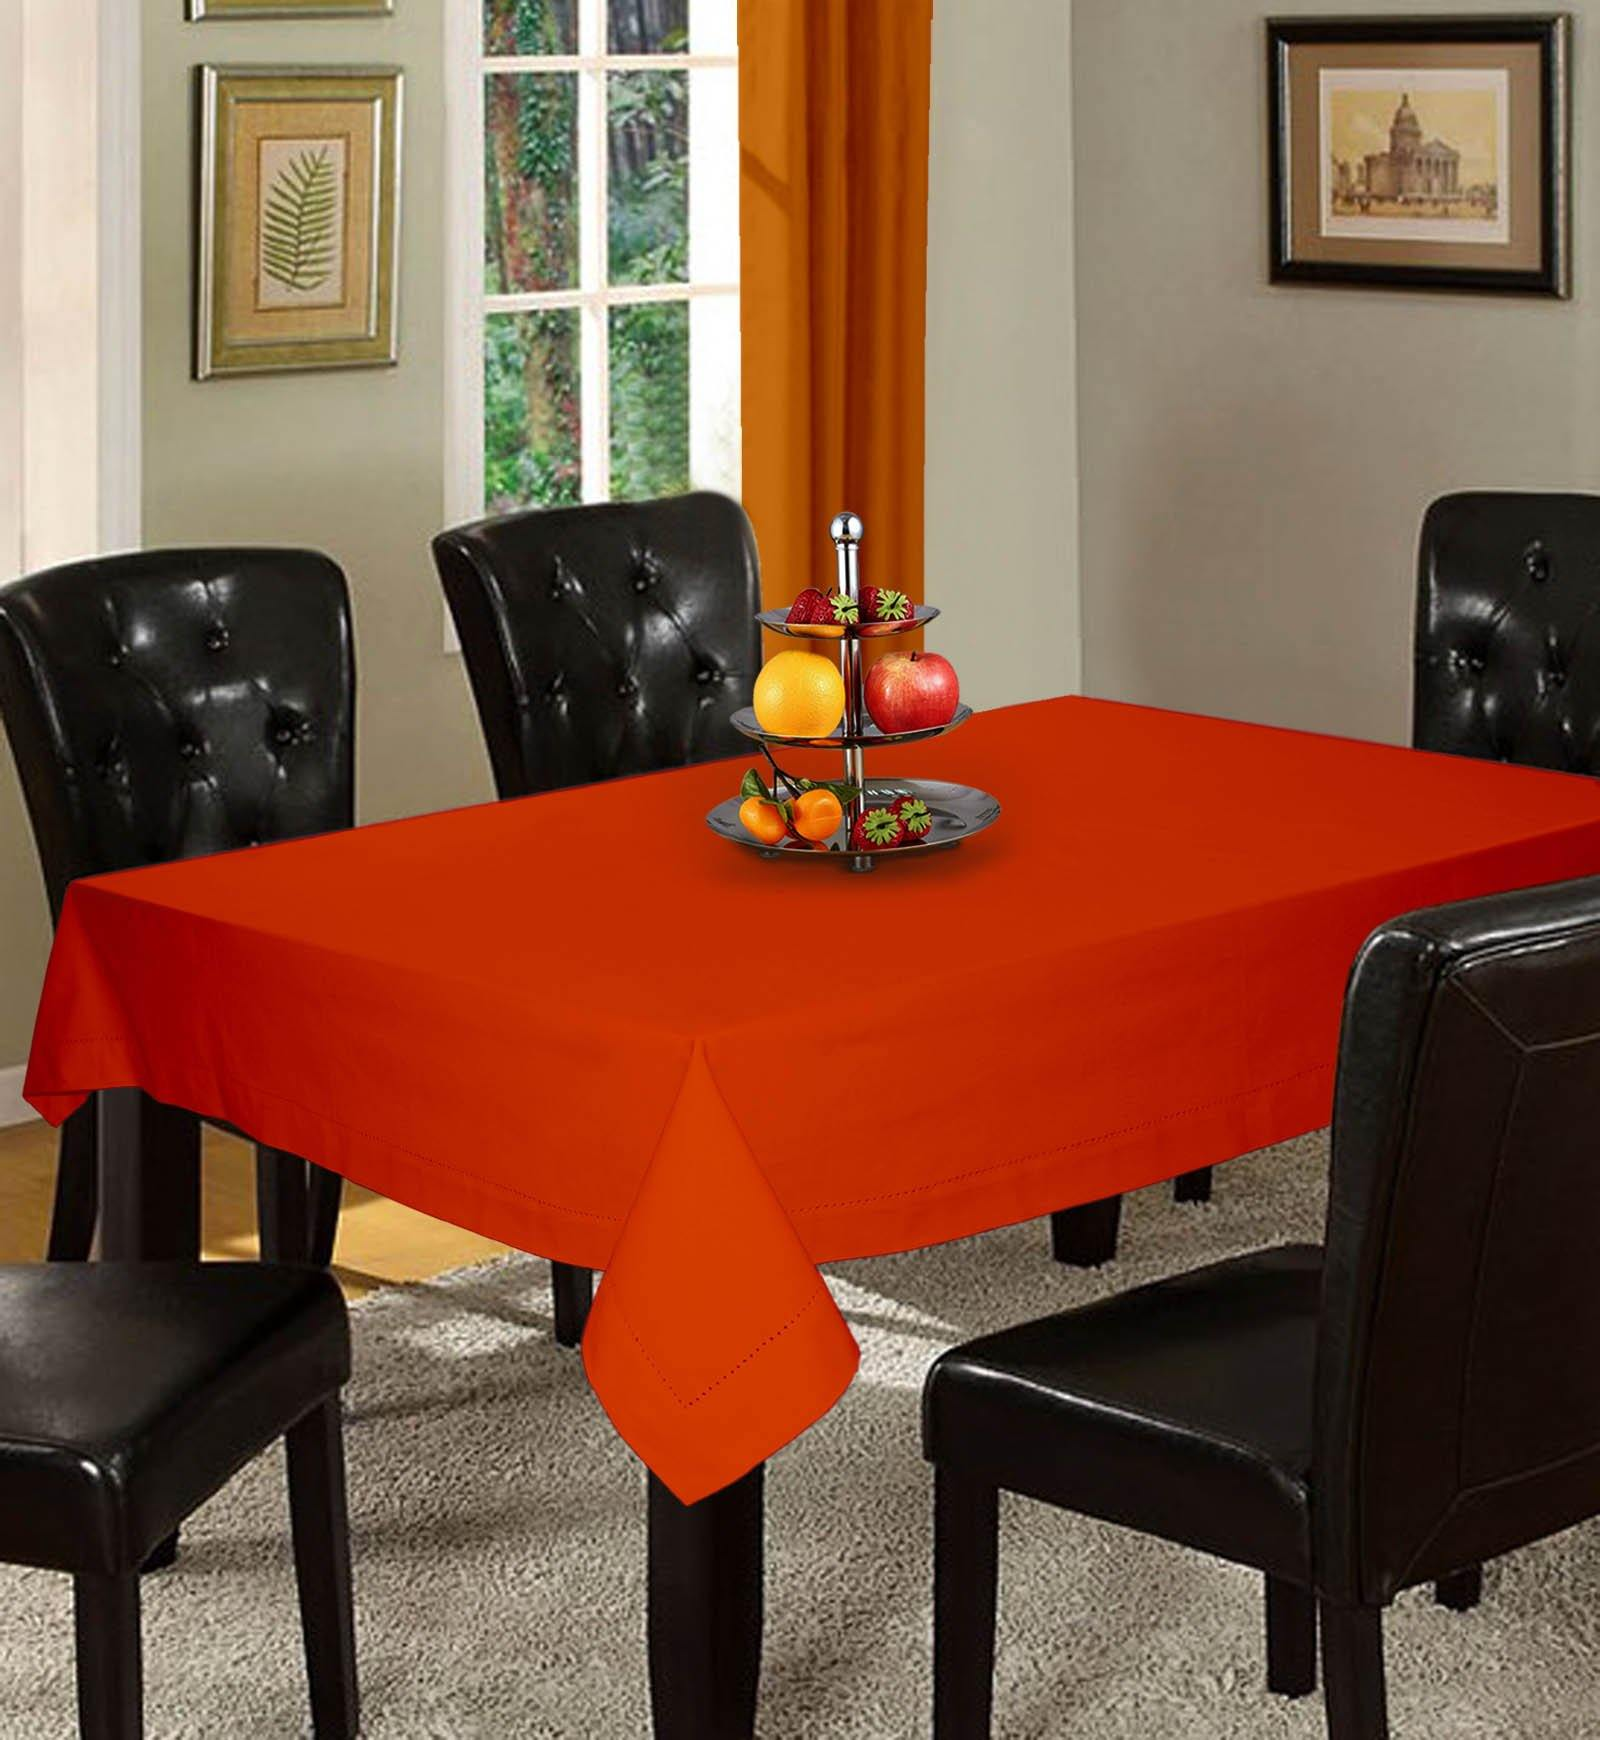 Lushomes Plain Red Wood Holestitch Cotton for 6 Seater Orange Table Covers - Lushomes